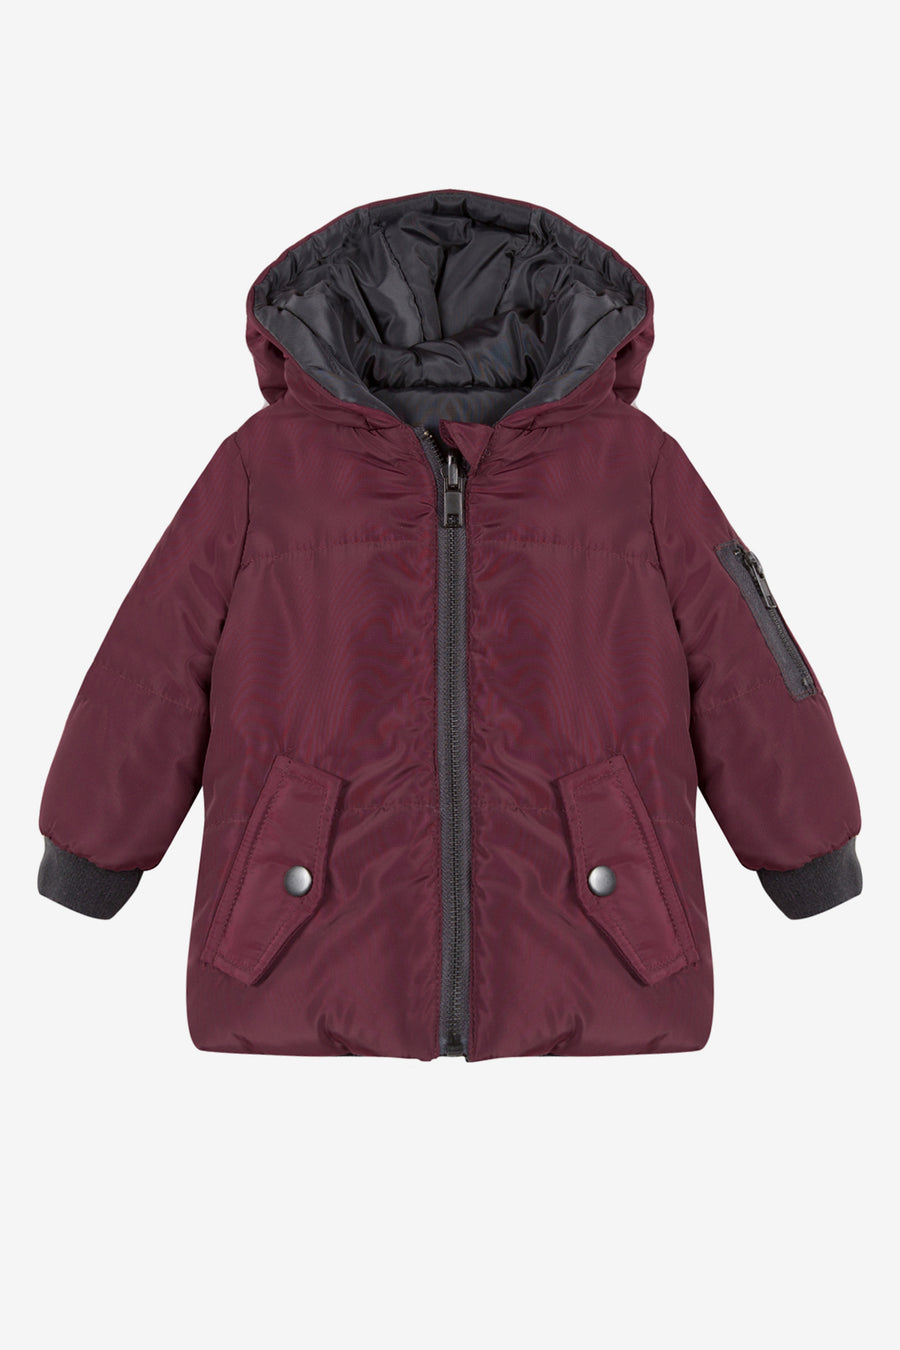 3pommes Baby Boys Burgundy Reversible Coat